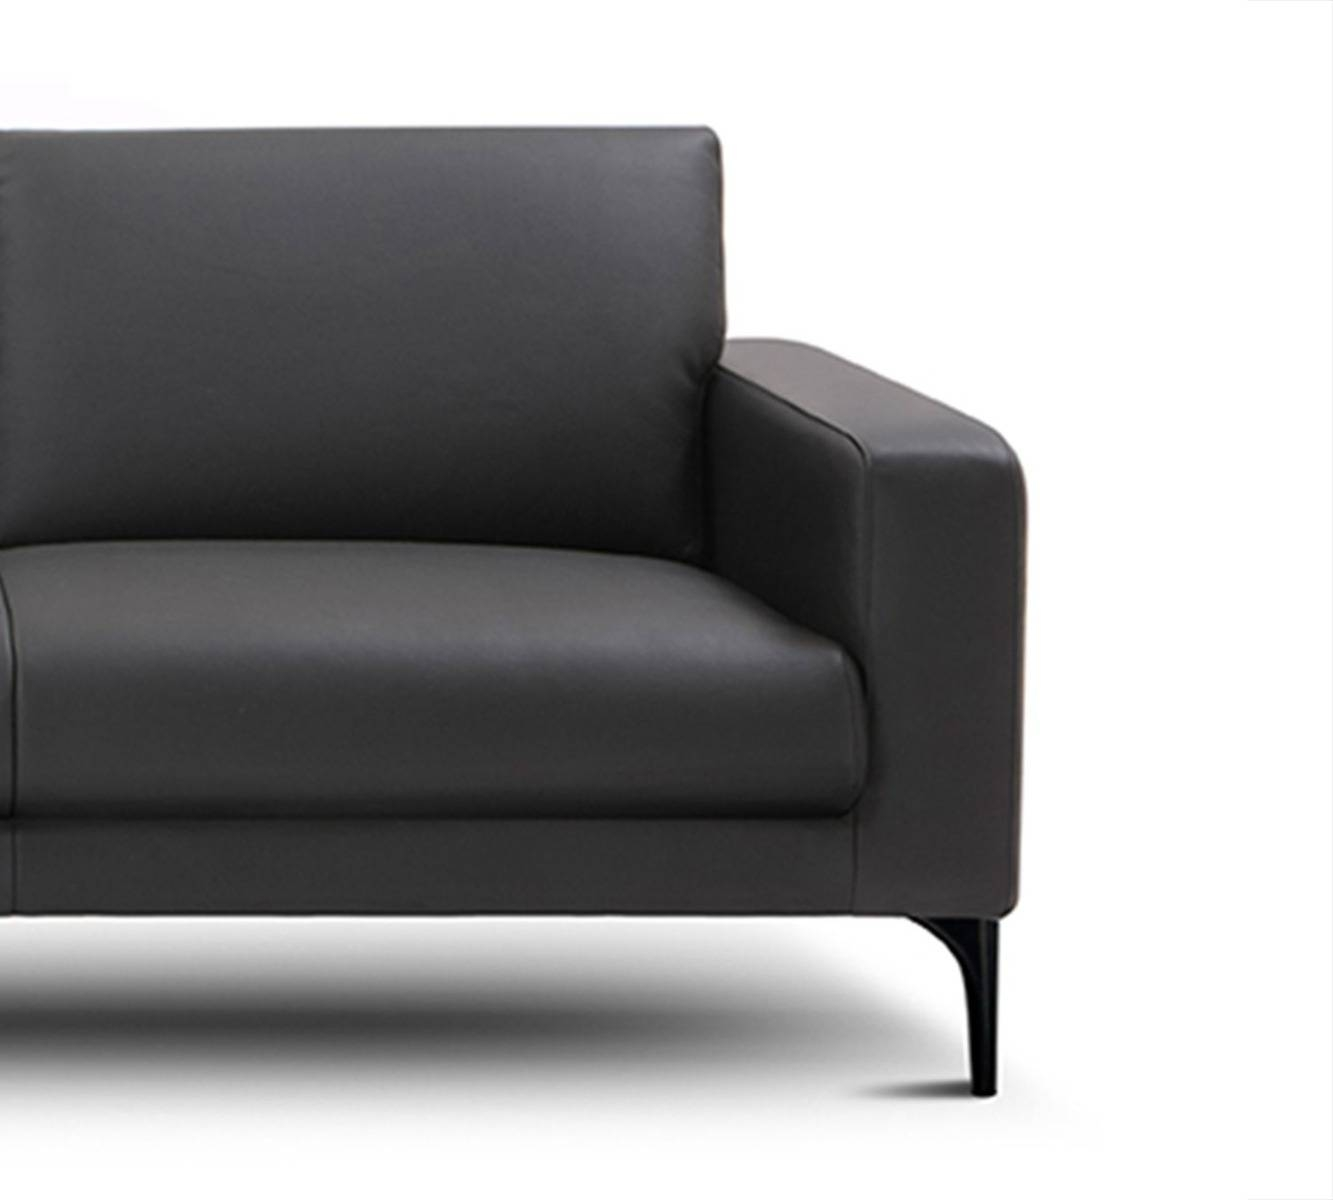 Opera Sofa - Designed For Small Spaces | Lounge | Couch | Buy with Single Seat Sofa Chairs (Image 6 of 15)